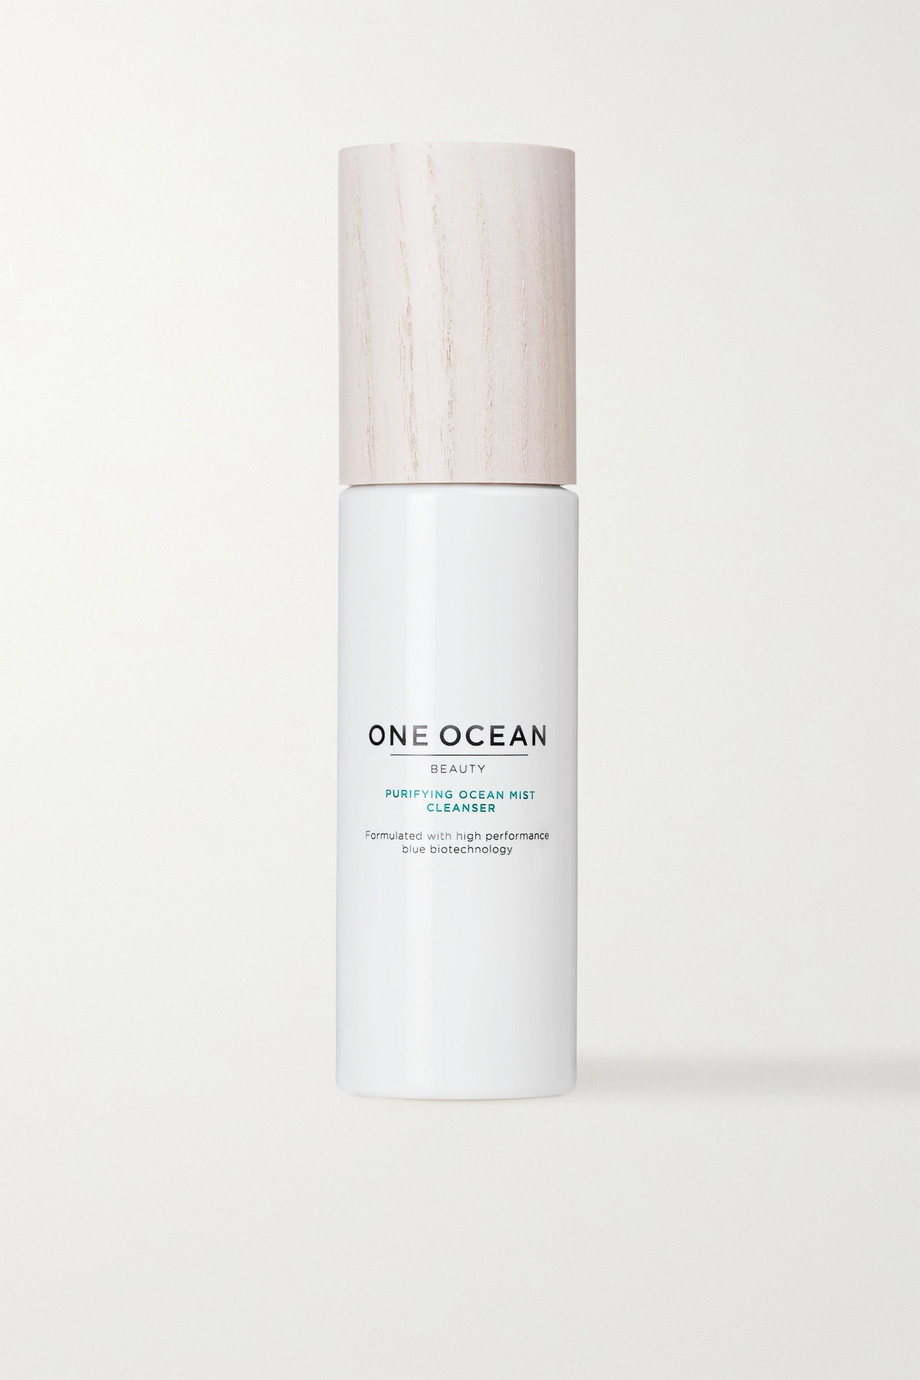 One Ocean Beauty Purifying Ocean Mist Cleanser, 100 ml – Gesichtsspray